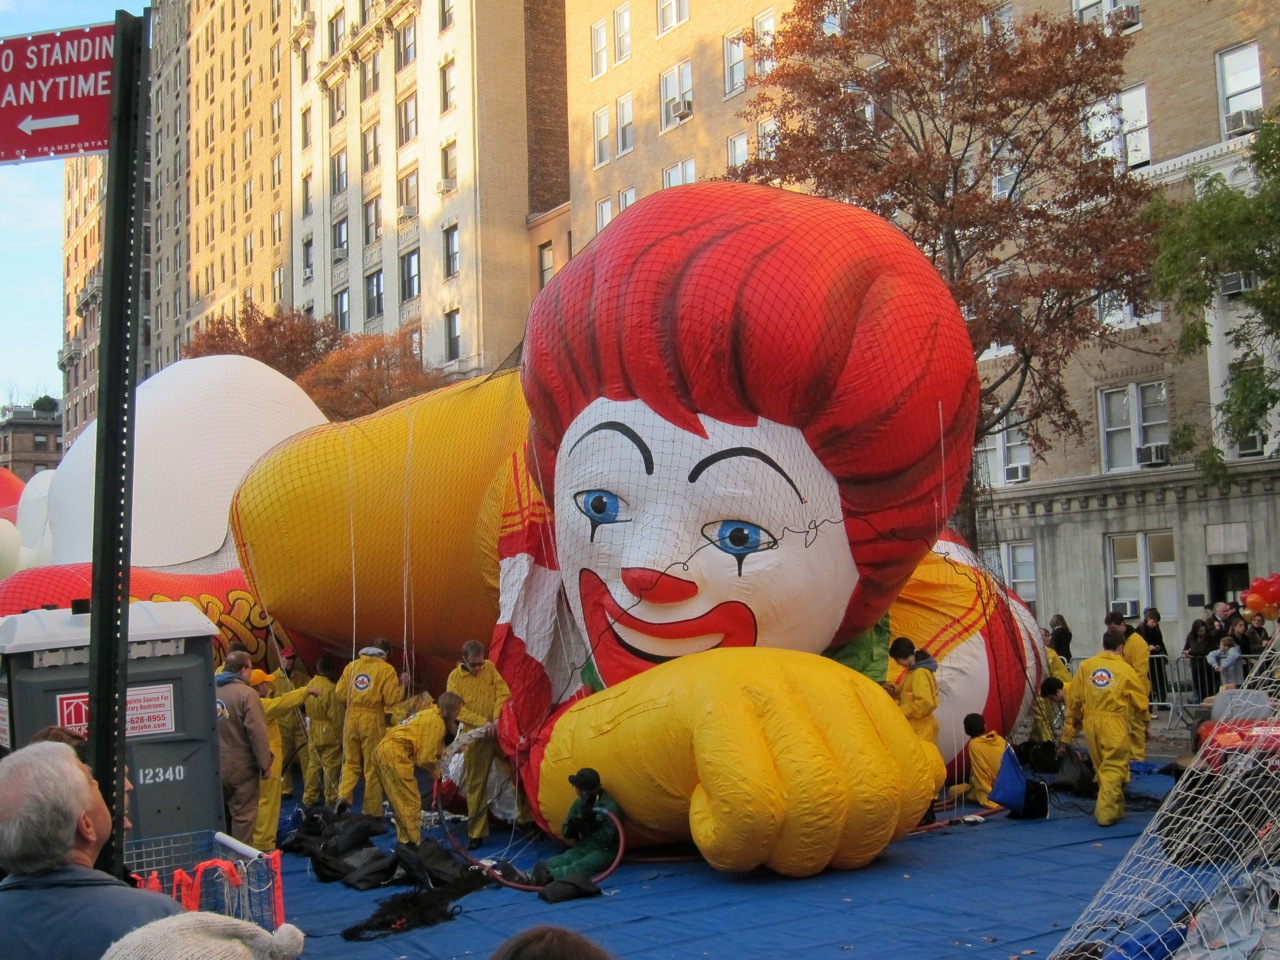 Macys Thanksgiving parade balloon inflation AM 15